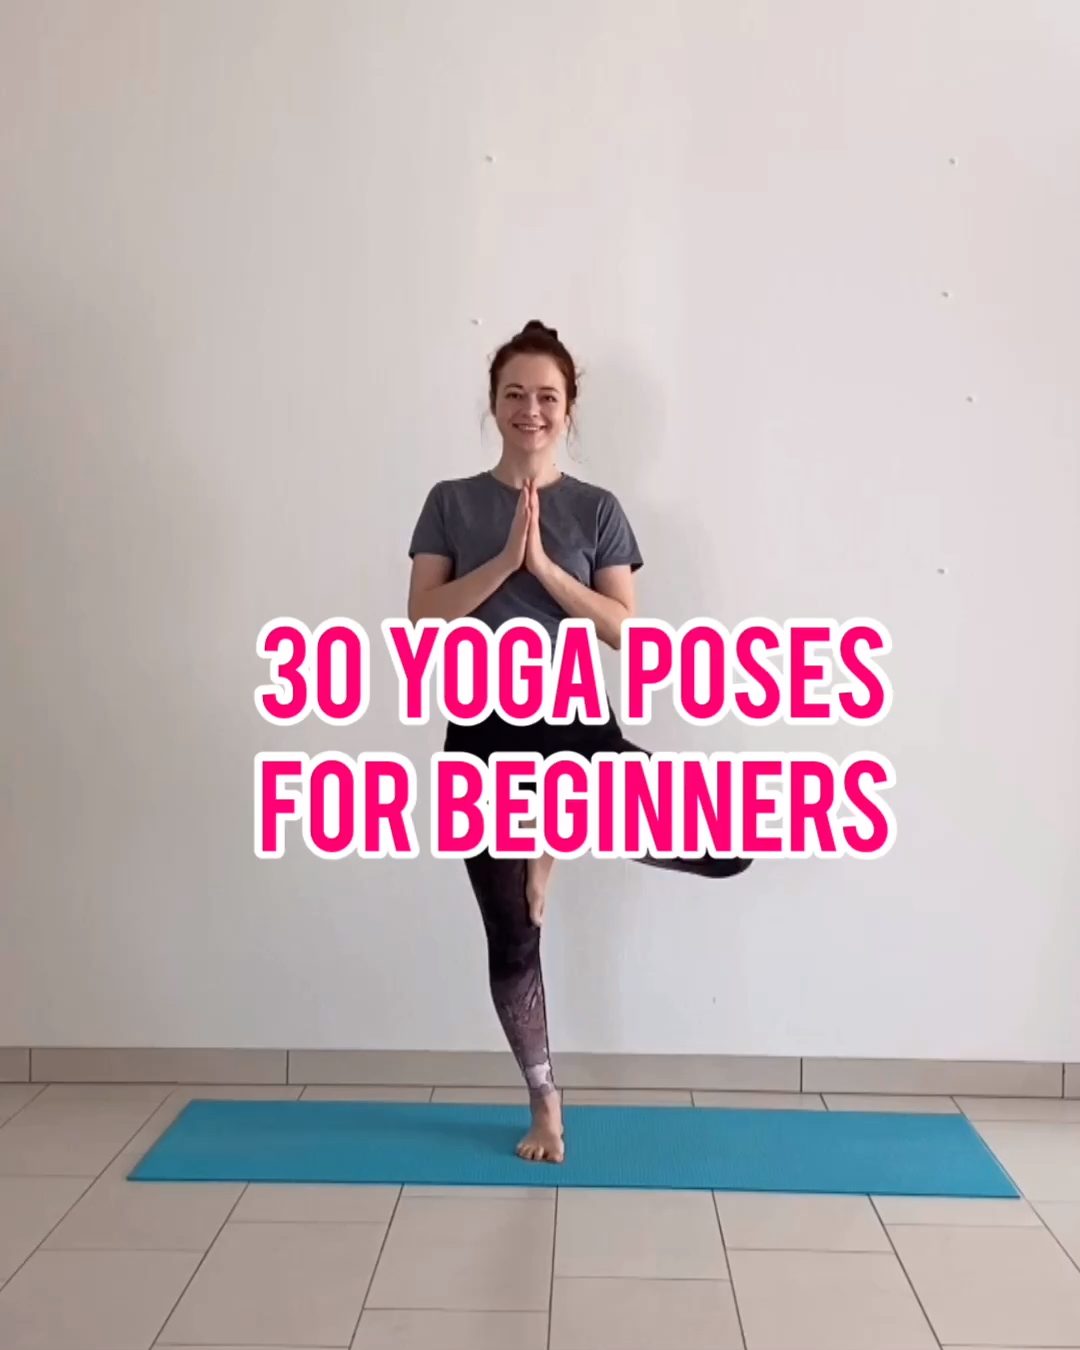 30 Beginner Yoga Poses In this video Im going to demonstrate 30 common beginner yoga poses that youll probably see in almost every yoga class